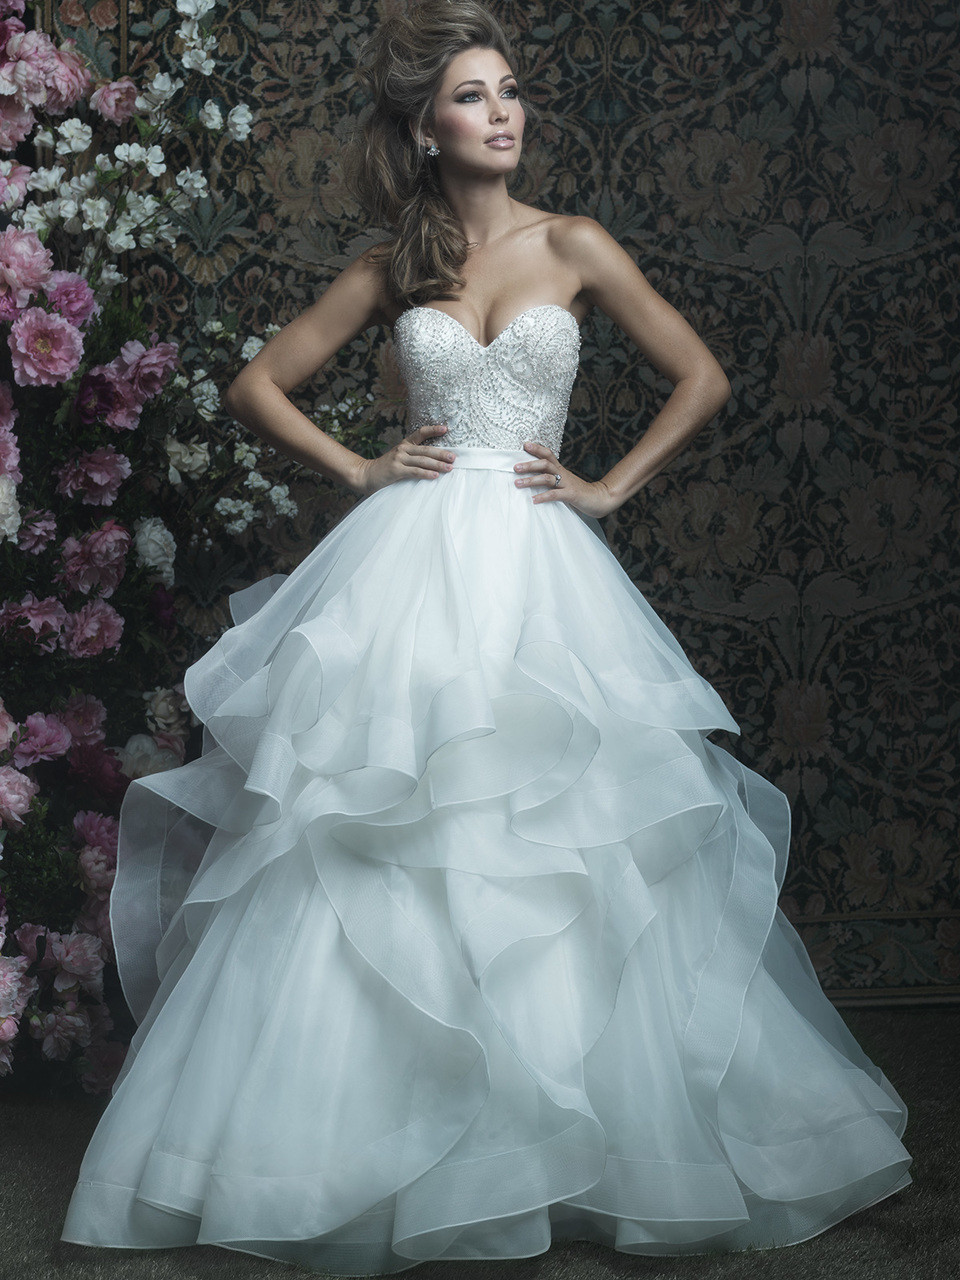 Allure Couture C417 Sweetheart Wedding Dress - Dimitra Designs